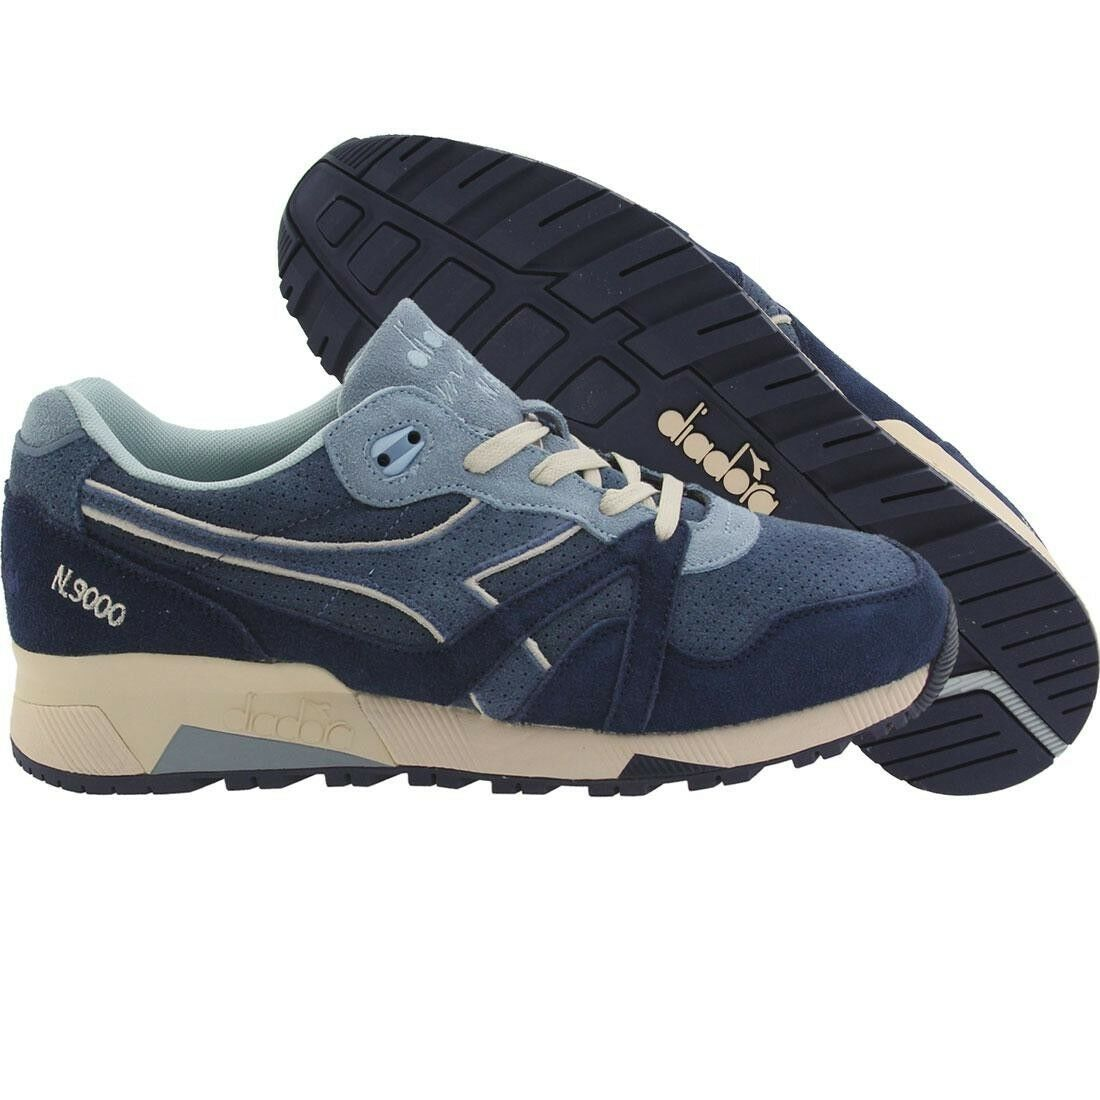 Diadora Men N9000 bluee moonlight 17012160023